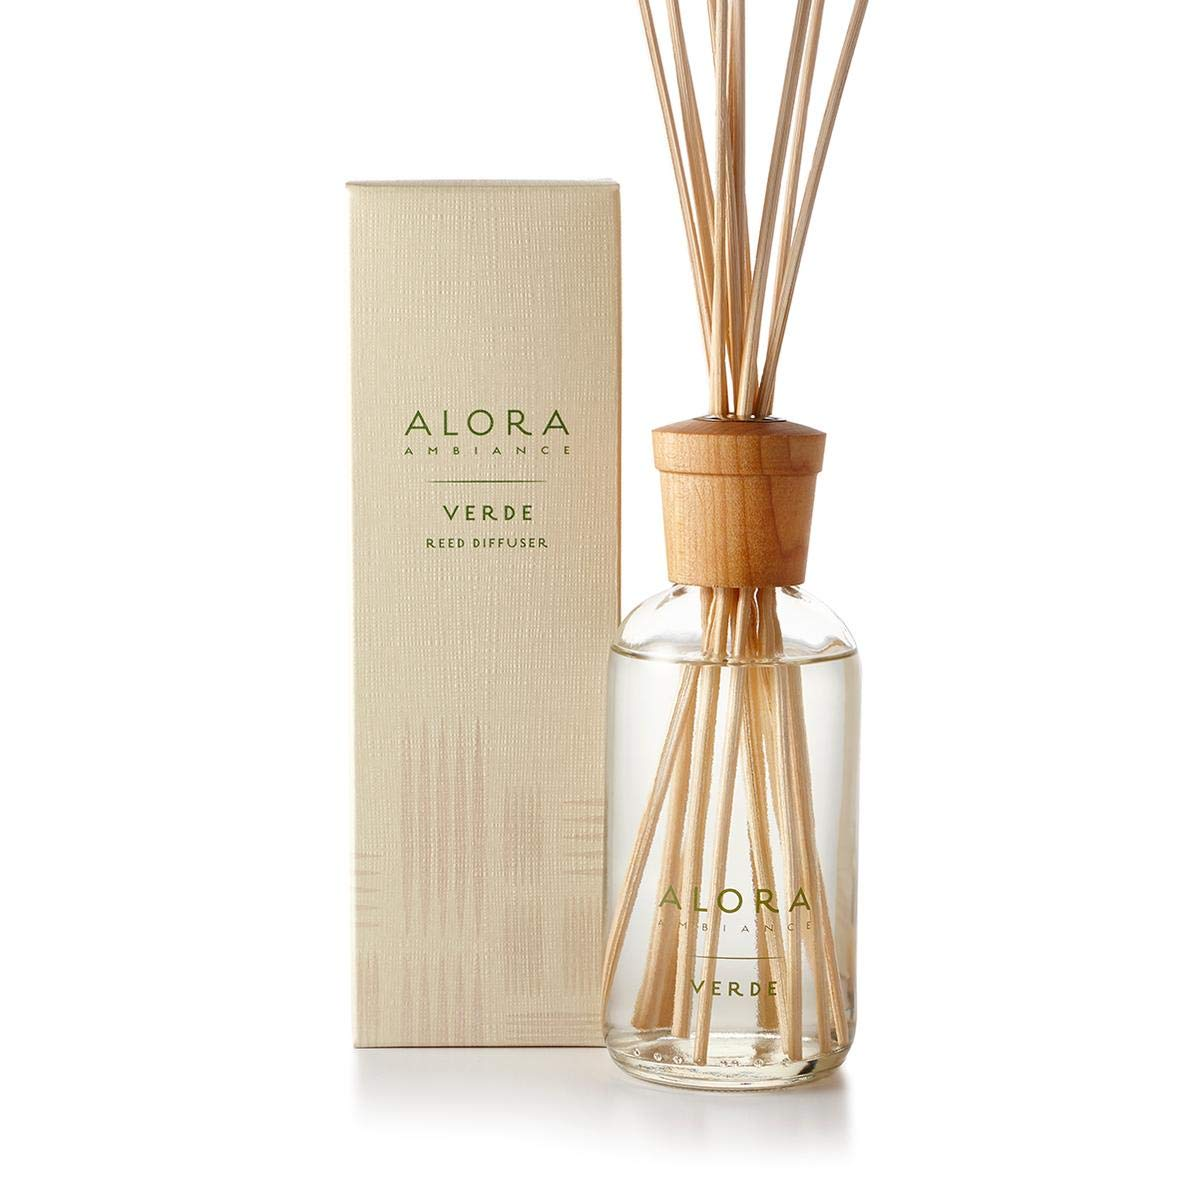 B00WDXPOD0 Alora Ambiance Verde 8 oz Reed Diffuser | Long-Lasting Fresh Melon Fragrance | Beautifully Designed for Any Space 6130PZeIqeL